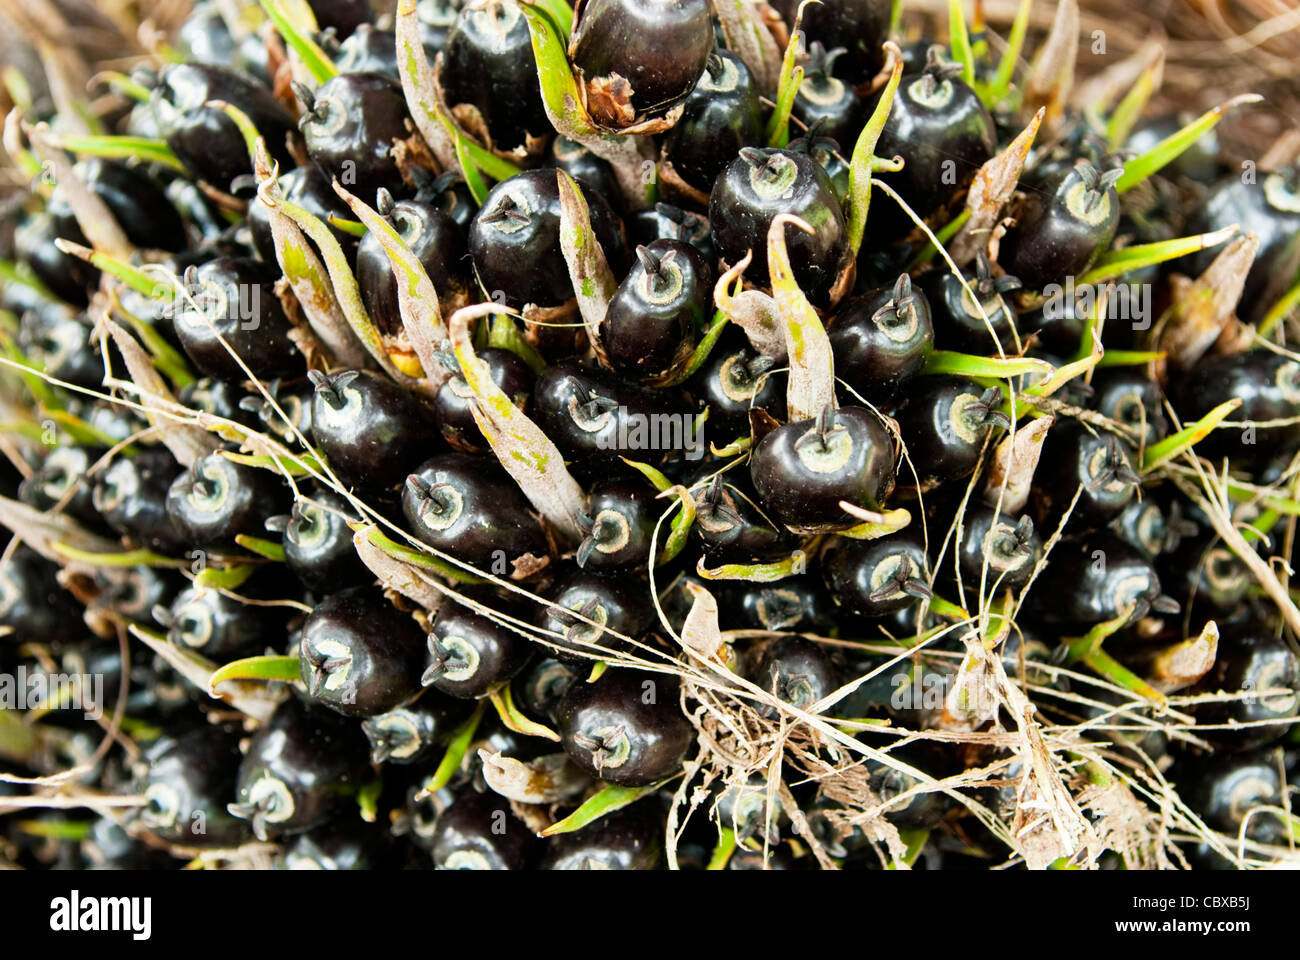 Close up Palm Oil Seeds on tree. Malaysia. - Stock Image